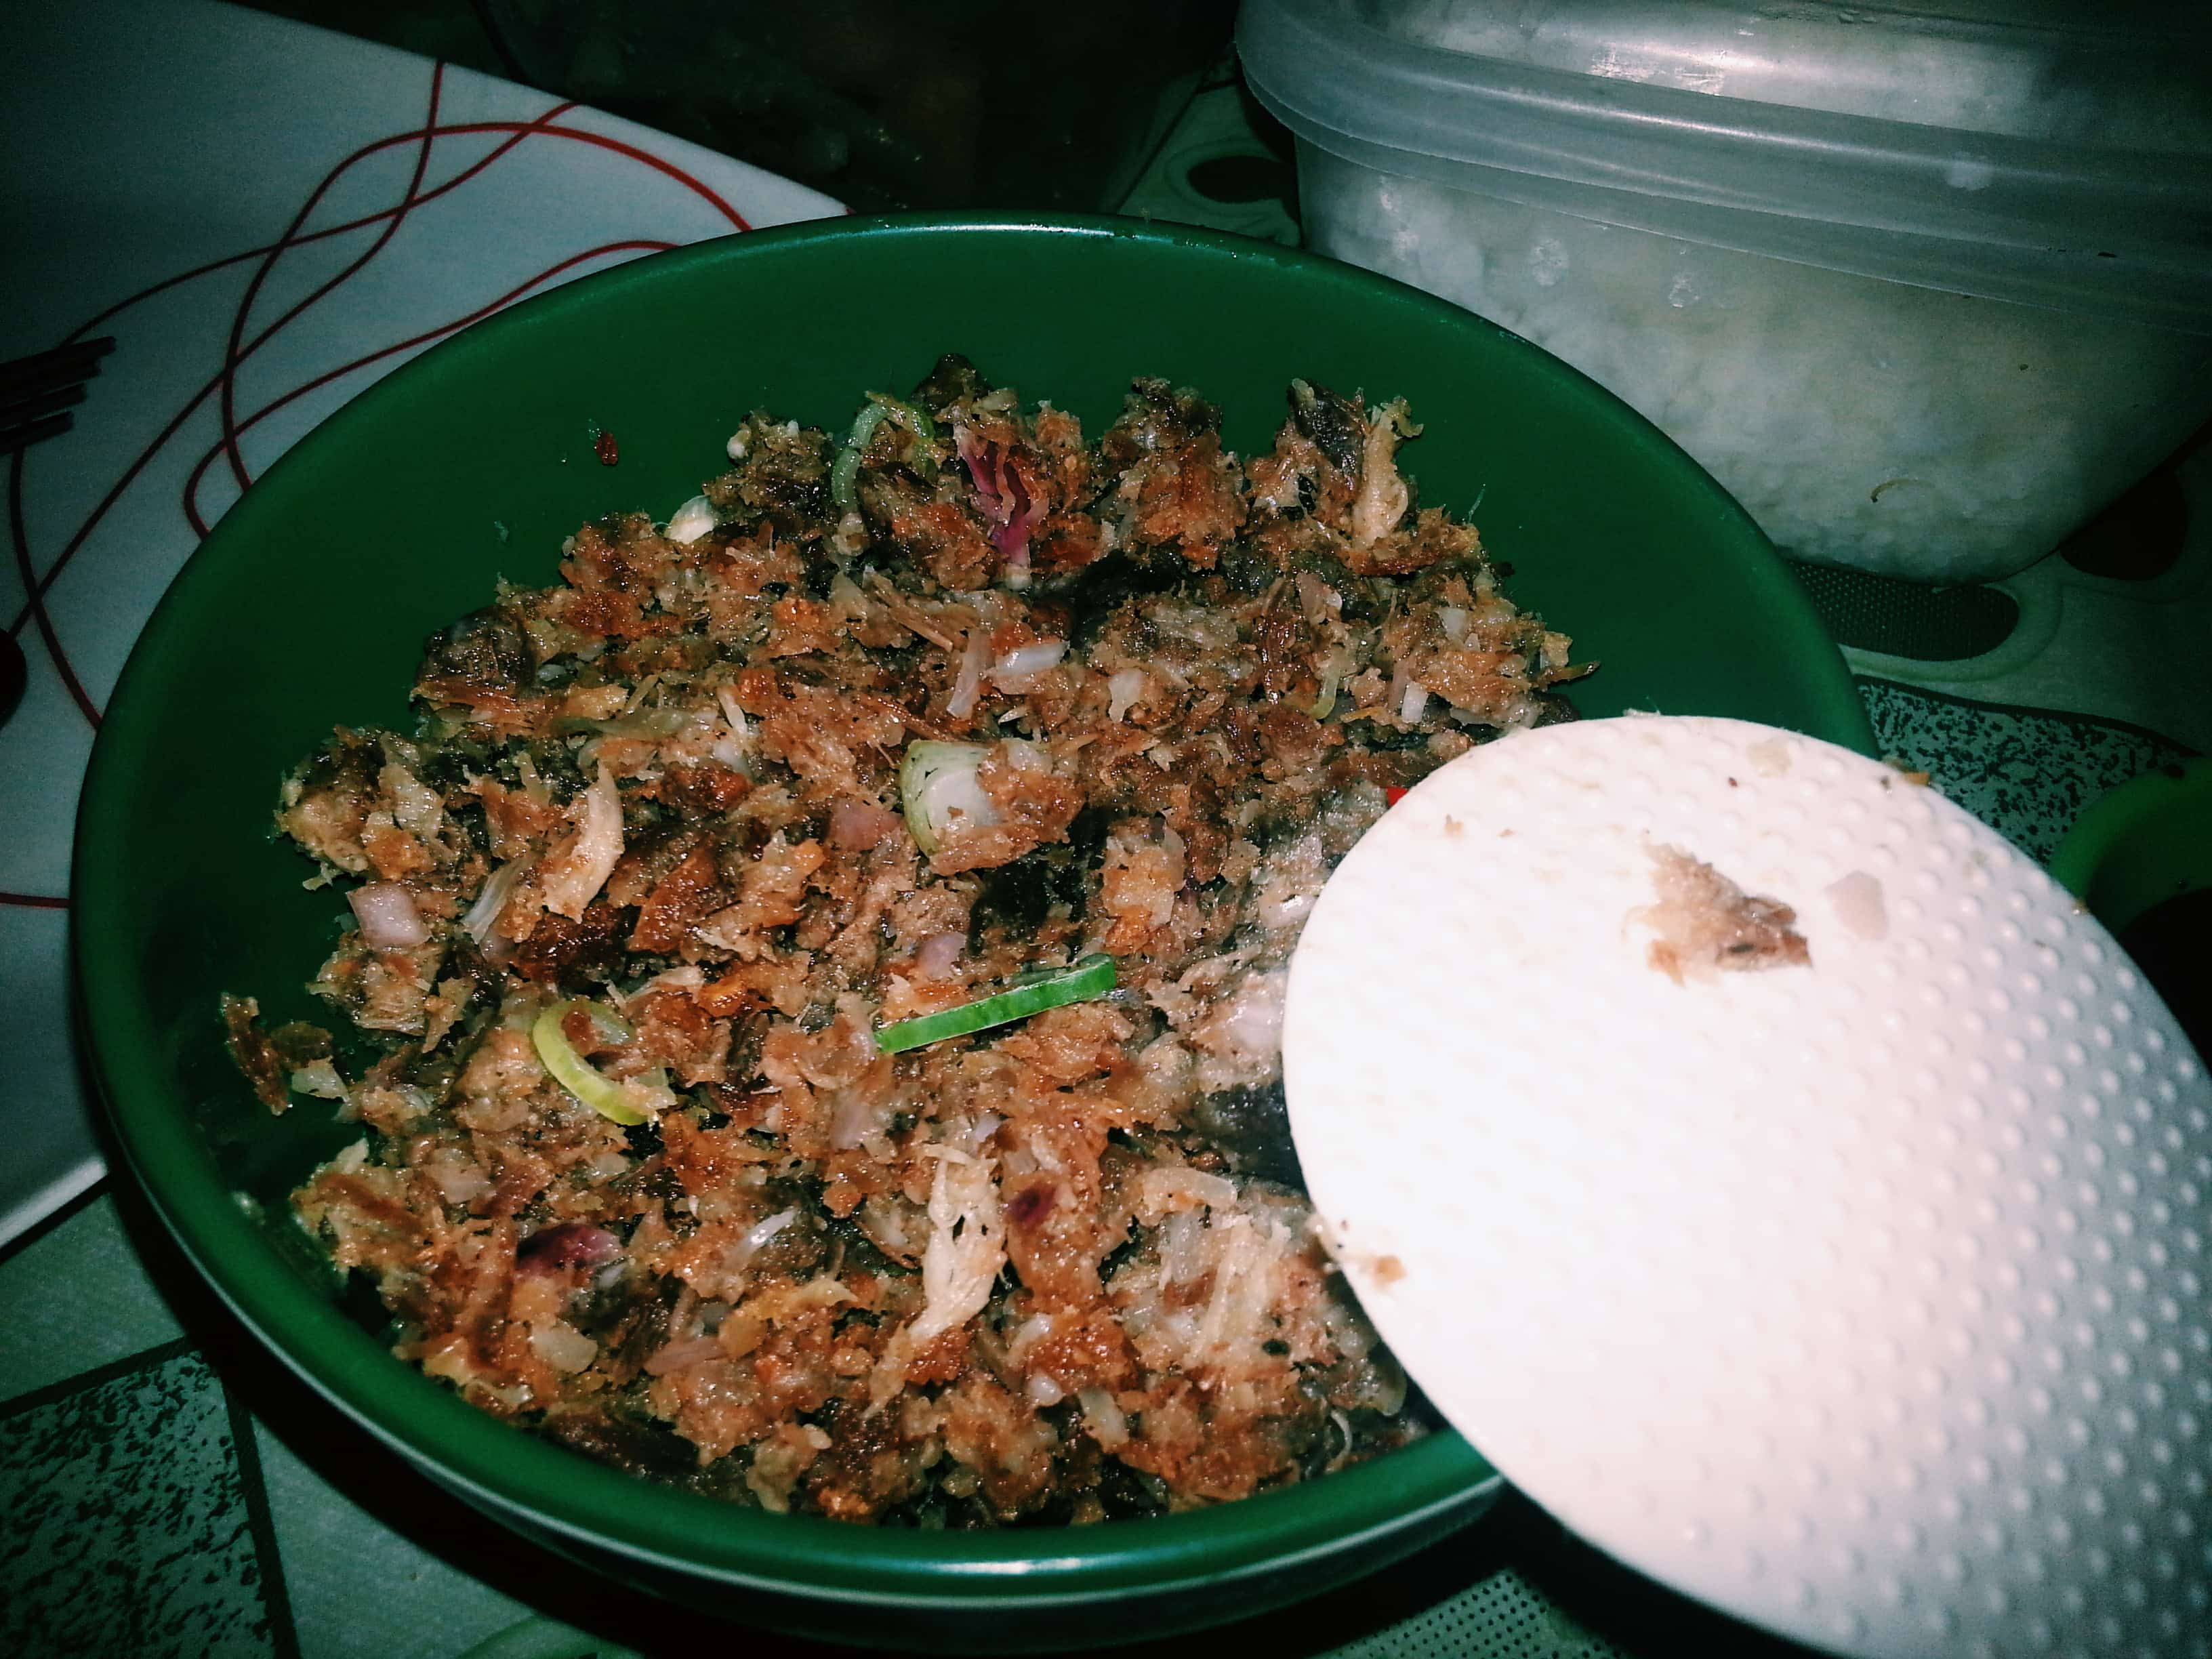 Sisig, cooked in Angeles City, Pampanga